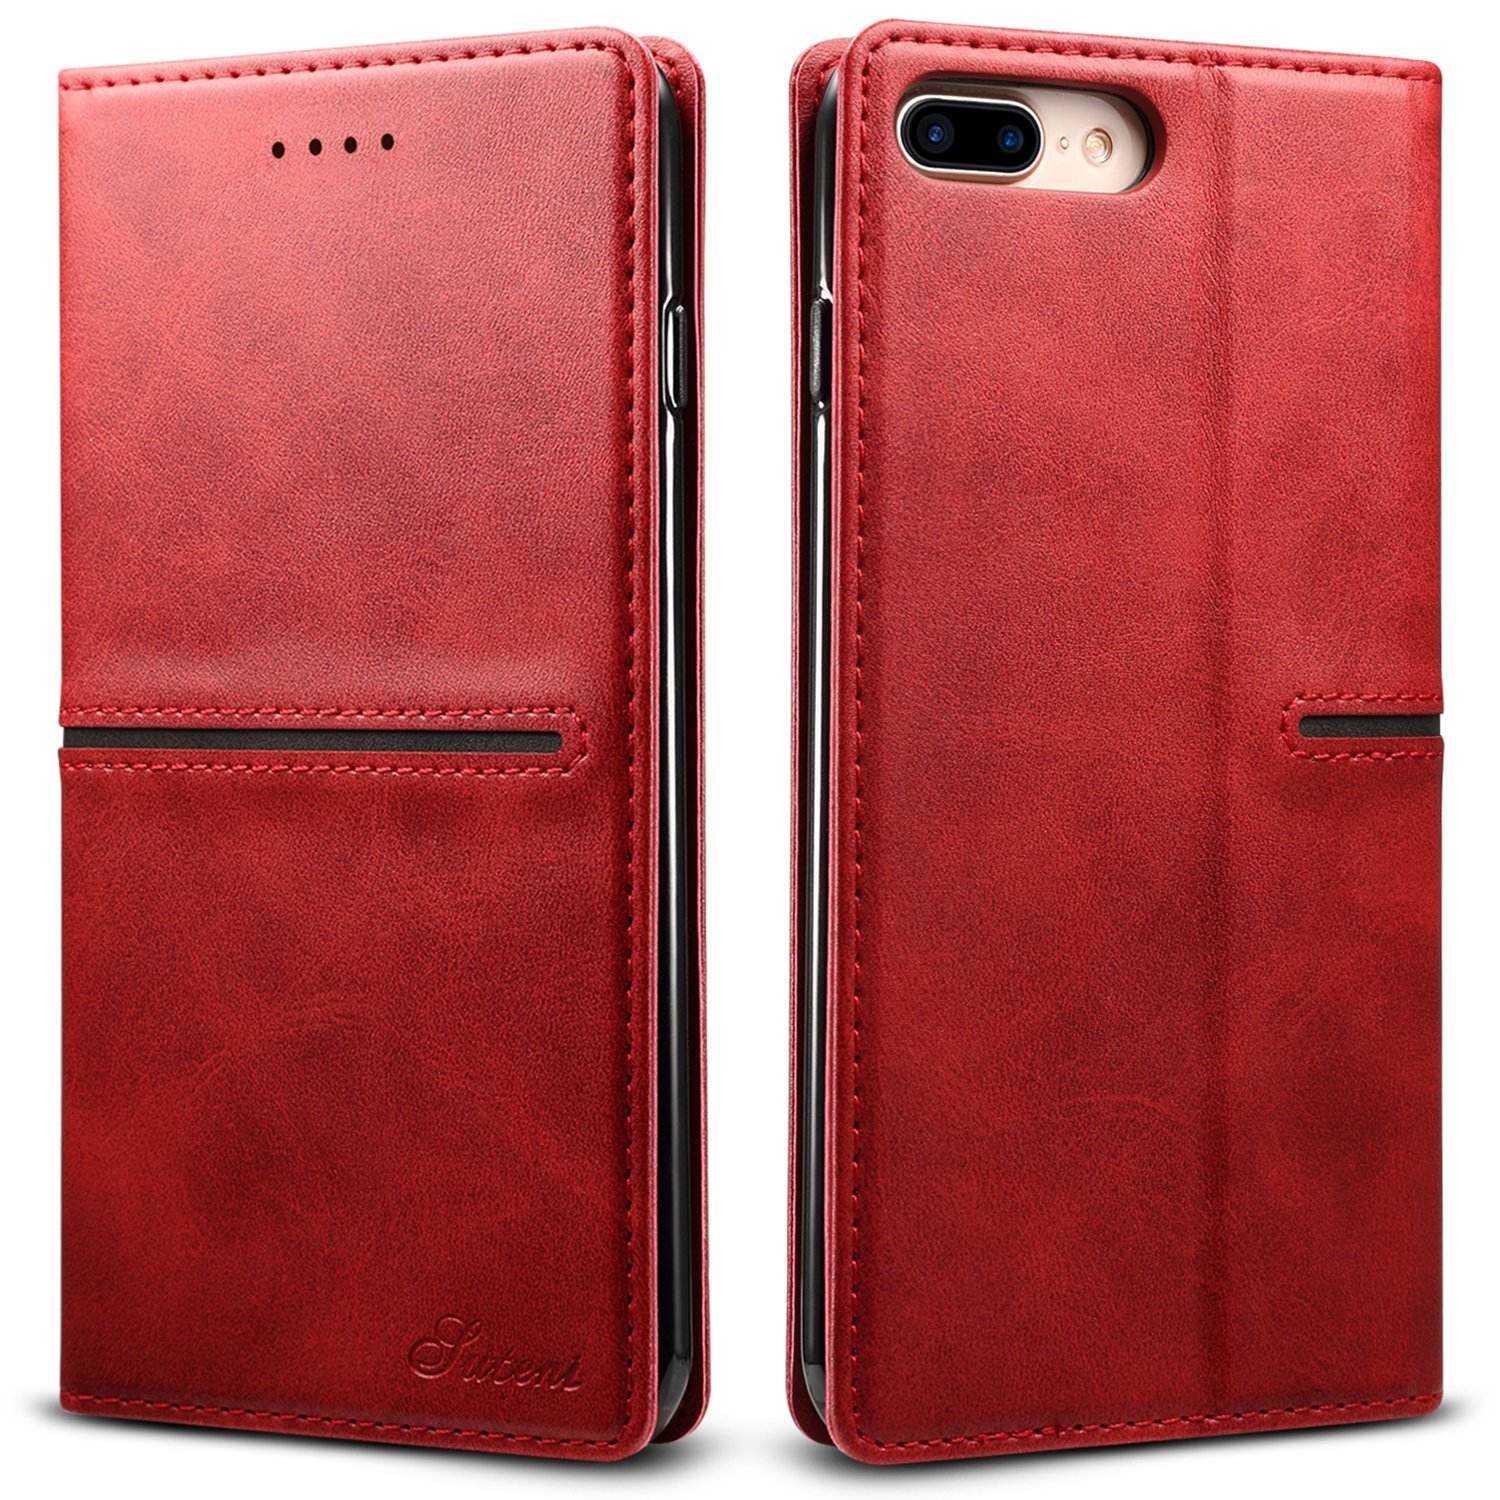 iPhone 7 Plus Leather Case, iPhone 8 Plus Case, XRPow Vintage Wallet Folding Flip Case with Kickstand and Card Slots Magnetic Closure Protective Cover (Red)